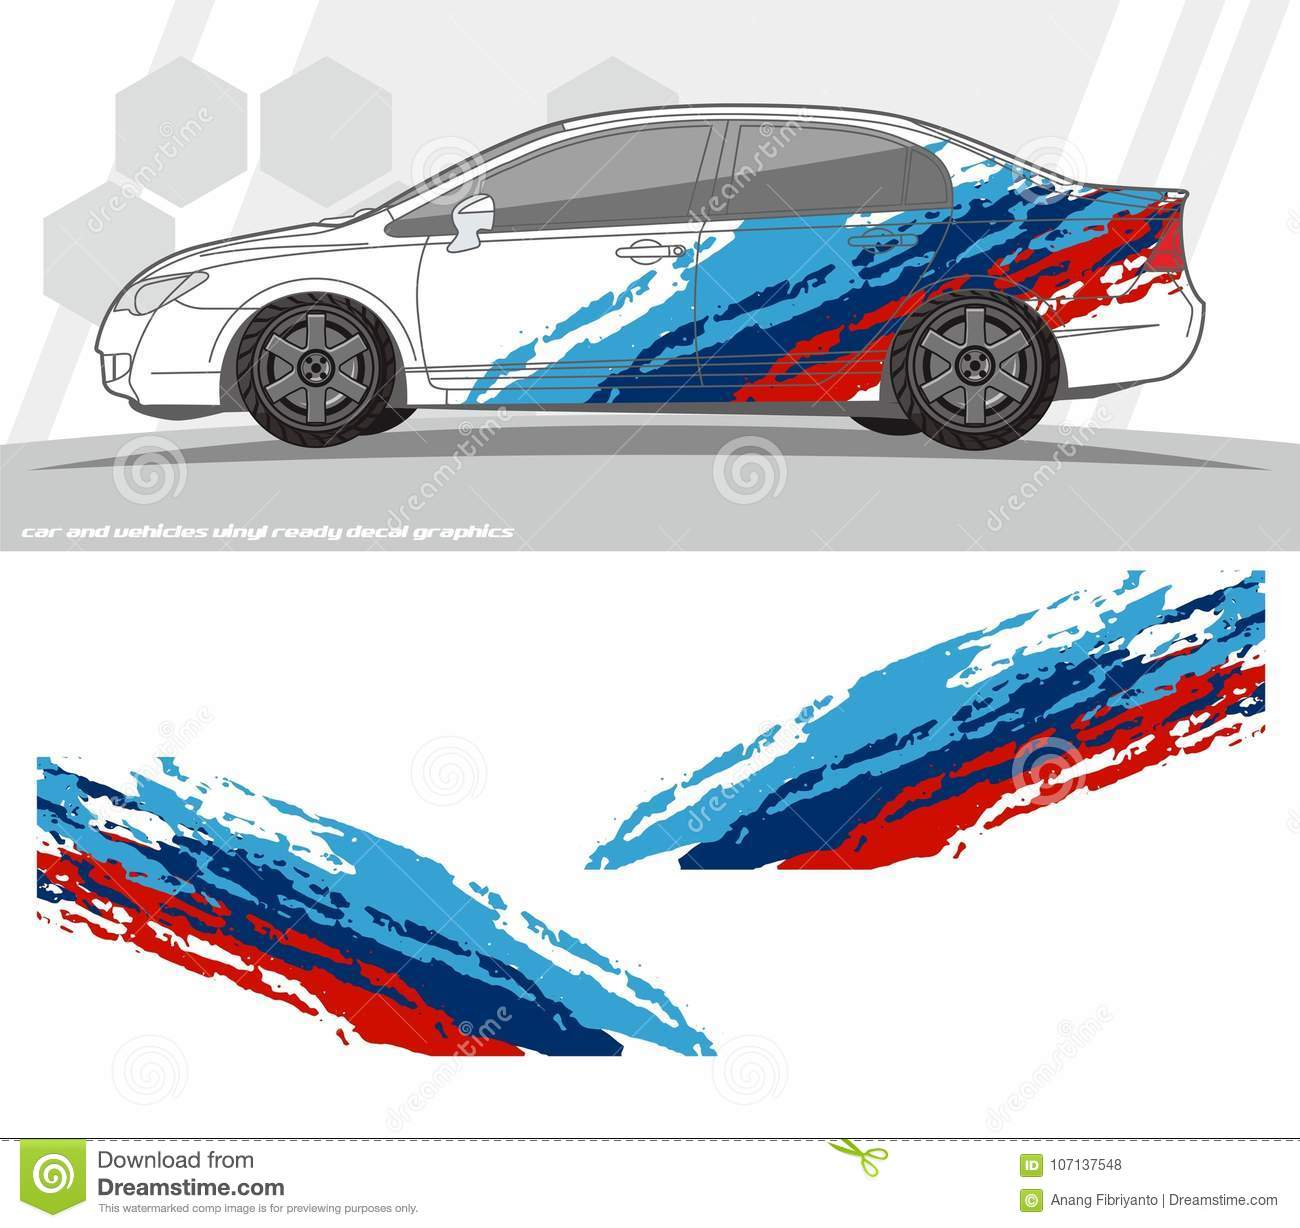 Car And Vehicles Decal Graphics Kit Designs Ready To